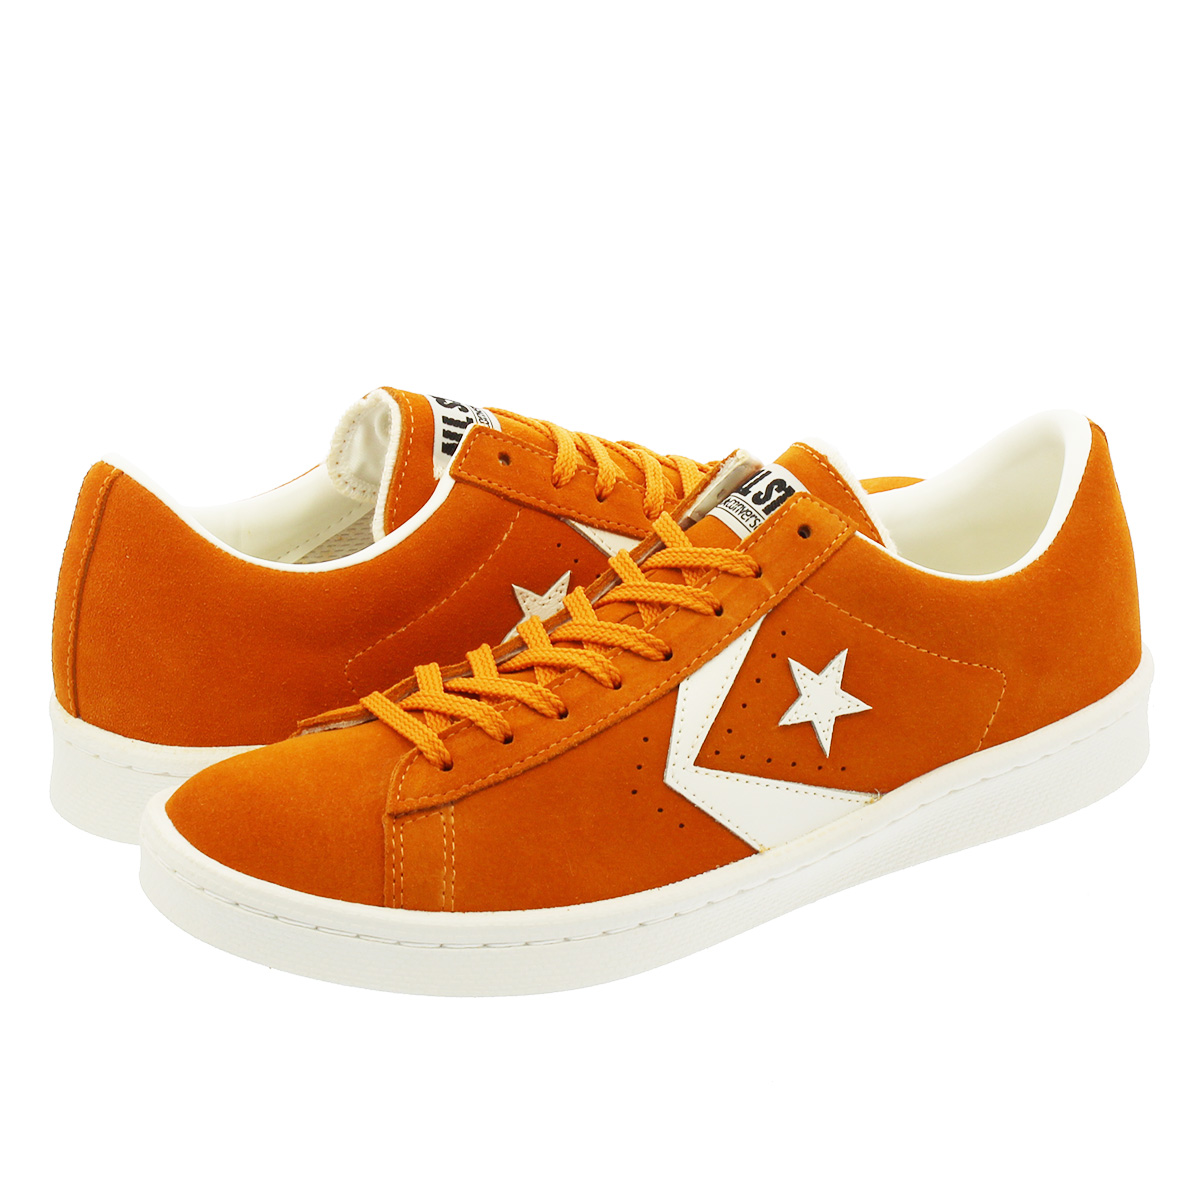 CONVERSE PRO LEATHER SUEDE OX コンバース プロ レザー スエード OX ORANGE